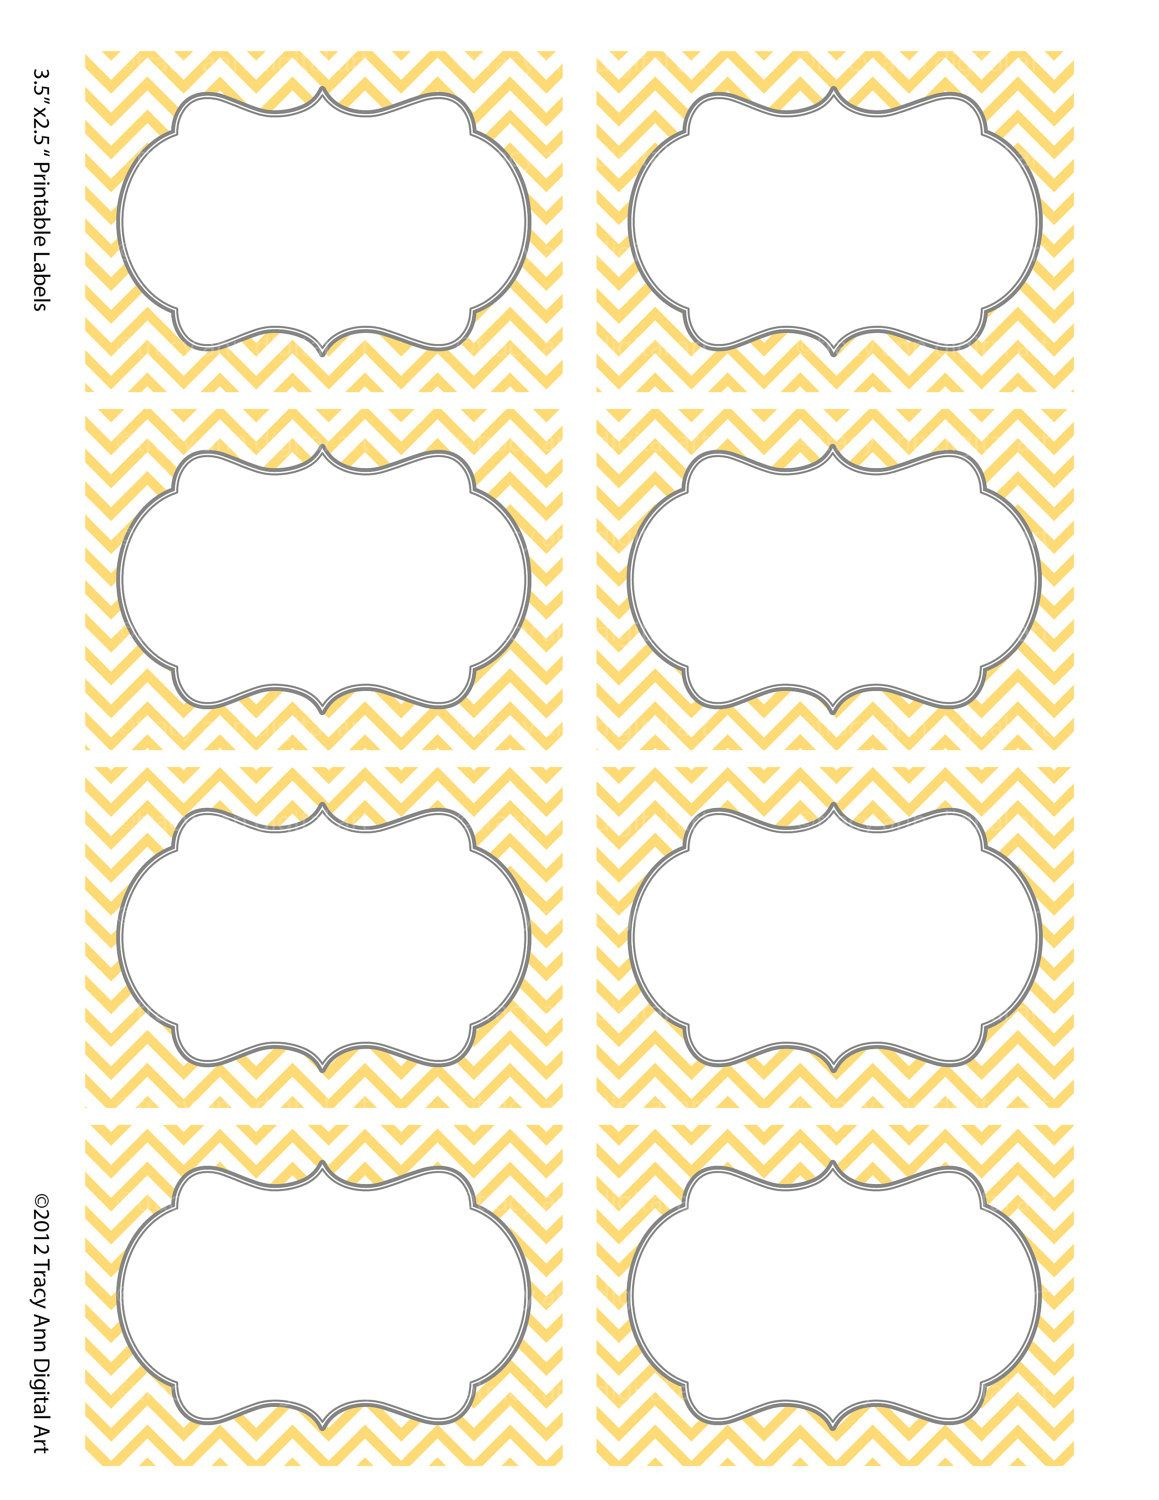 Chevron Labels Print Your Own Labels Yellow And Grey. $5.00, Via - Free Printable Chevron Labels